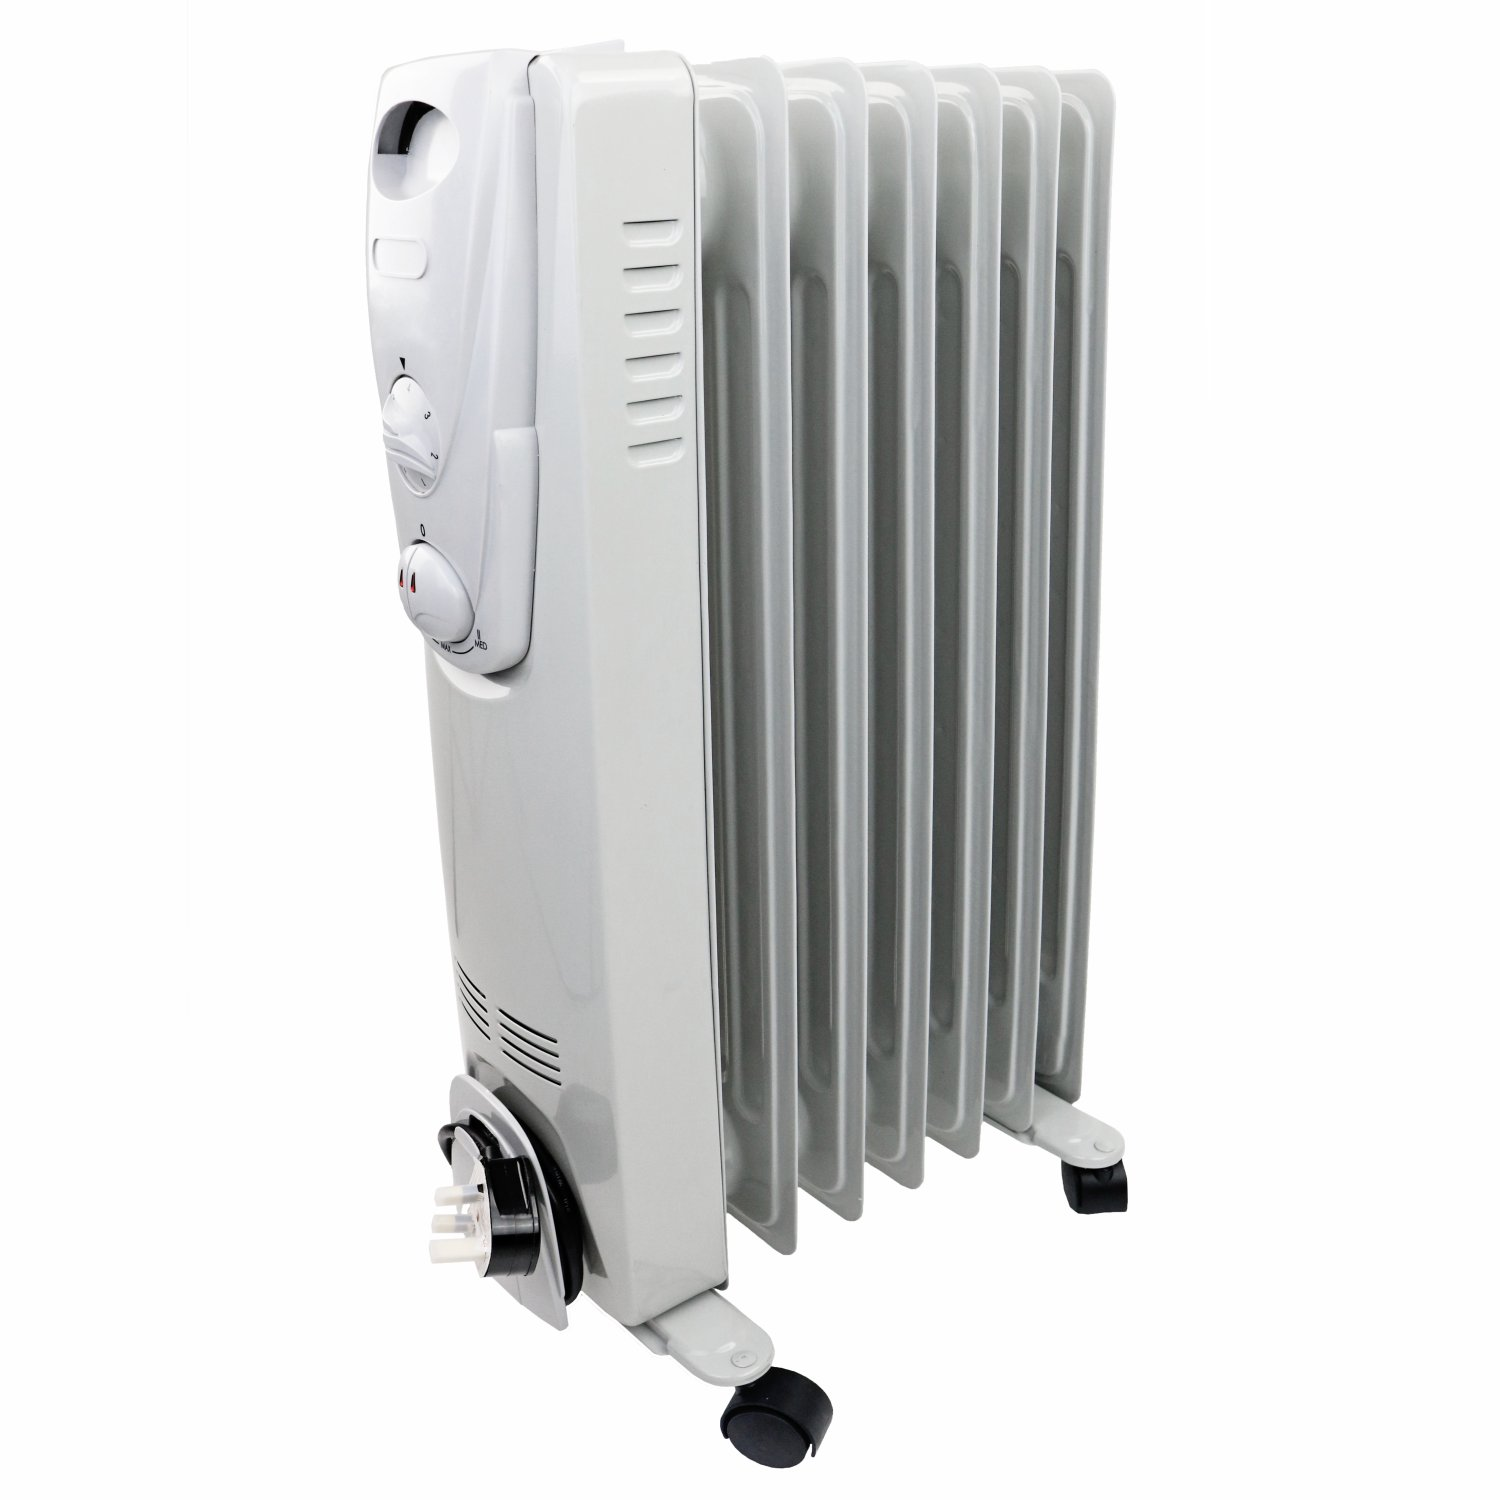 ... 1500W 7 Fin Portable Oil Filled Radiator Electric Heater ...